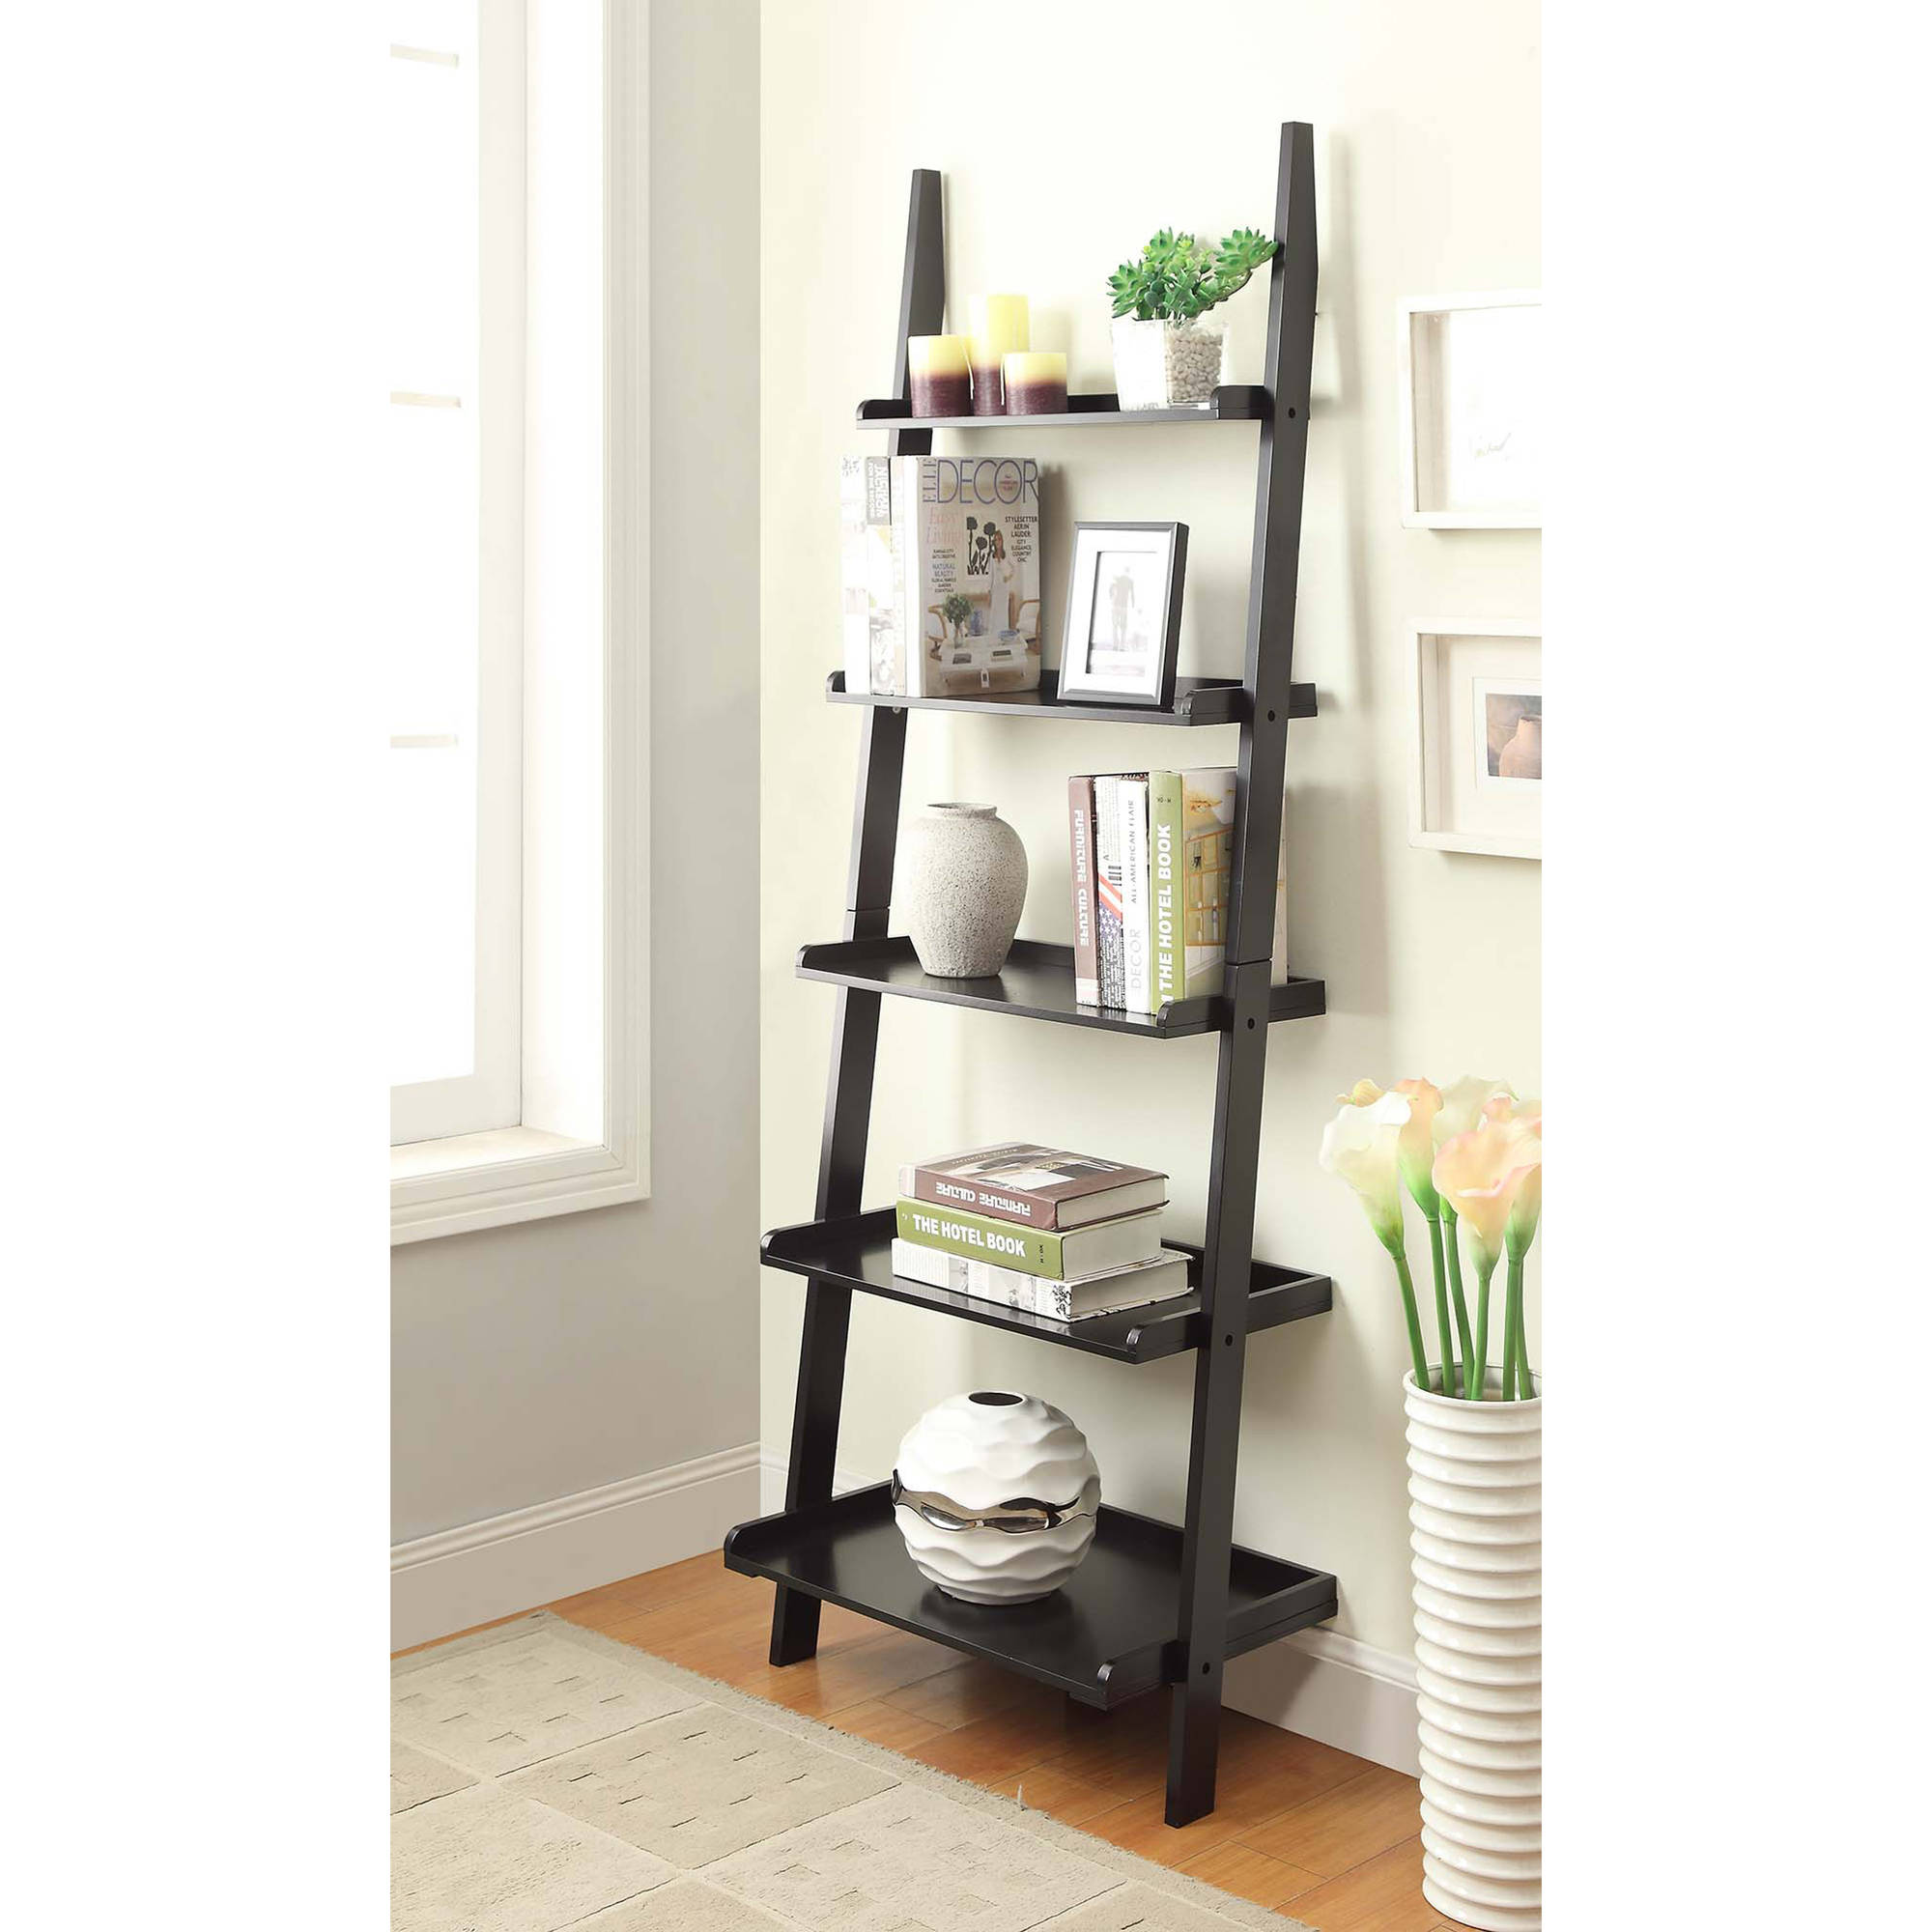 modern monarch bookcase storage h cappuccino ladder w display white open shelves itm drawers shelf